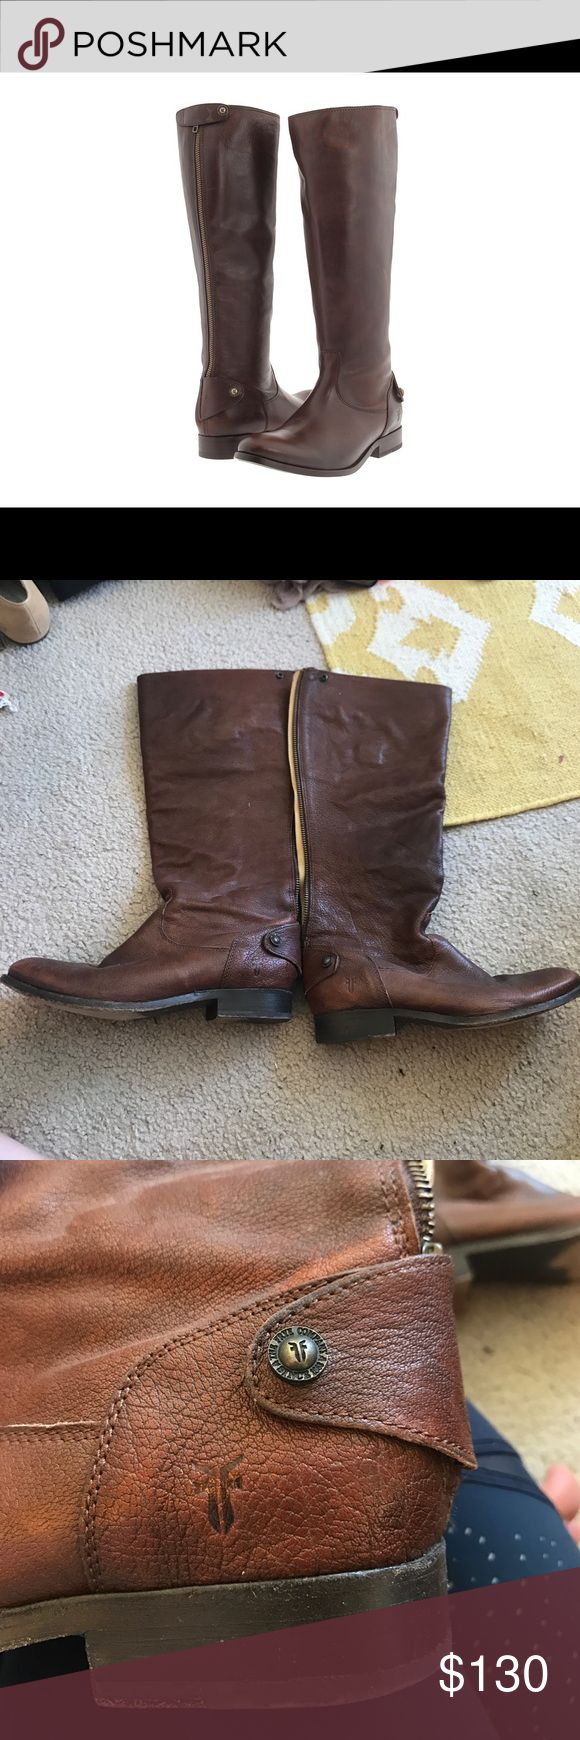 Frye Melissa button back zip boot Size 8. In great condition. Only worn a few times. Small scuffs at the toe of the boot. Frye Shoes Combat & Moto Boots